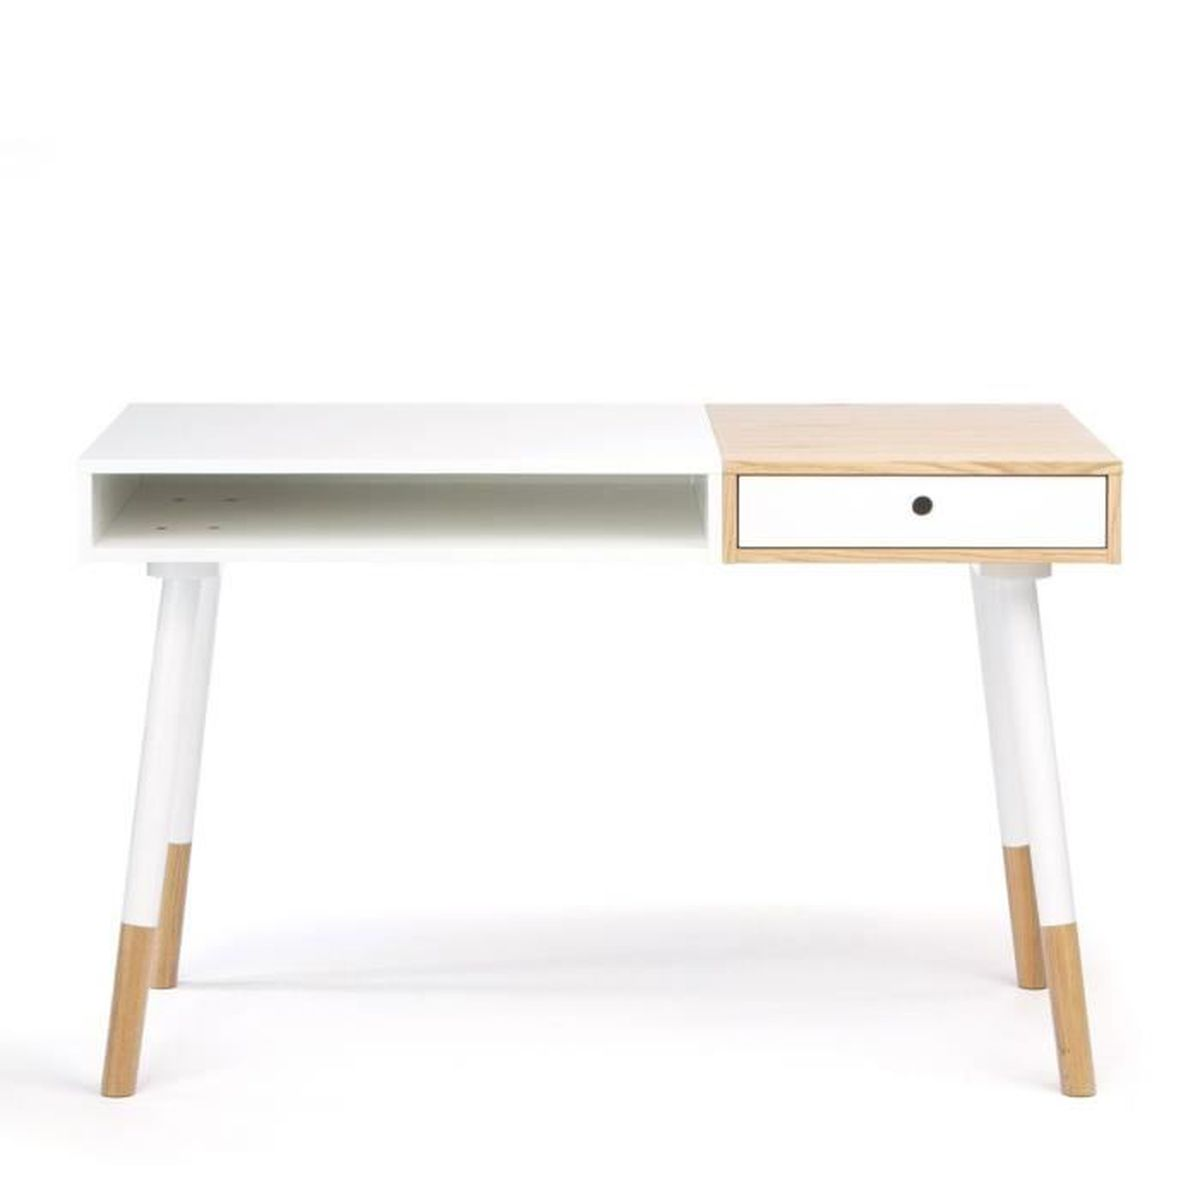 bureau design bois et blanc sonnenblick couleur blanc achat vente bureau bureau design bois. Black Bedroom Furniture Sets. Home Design Ideas